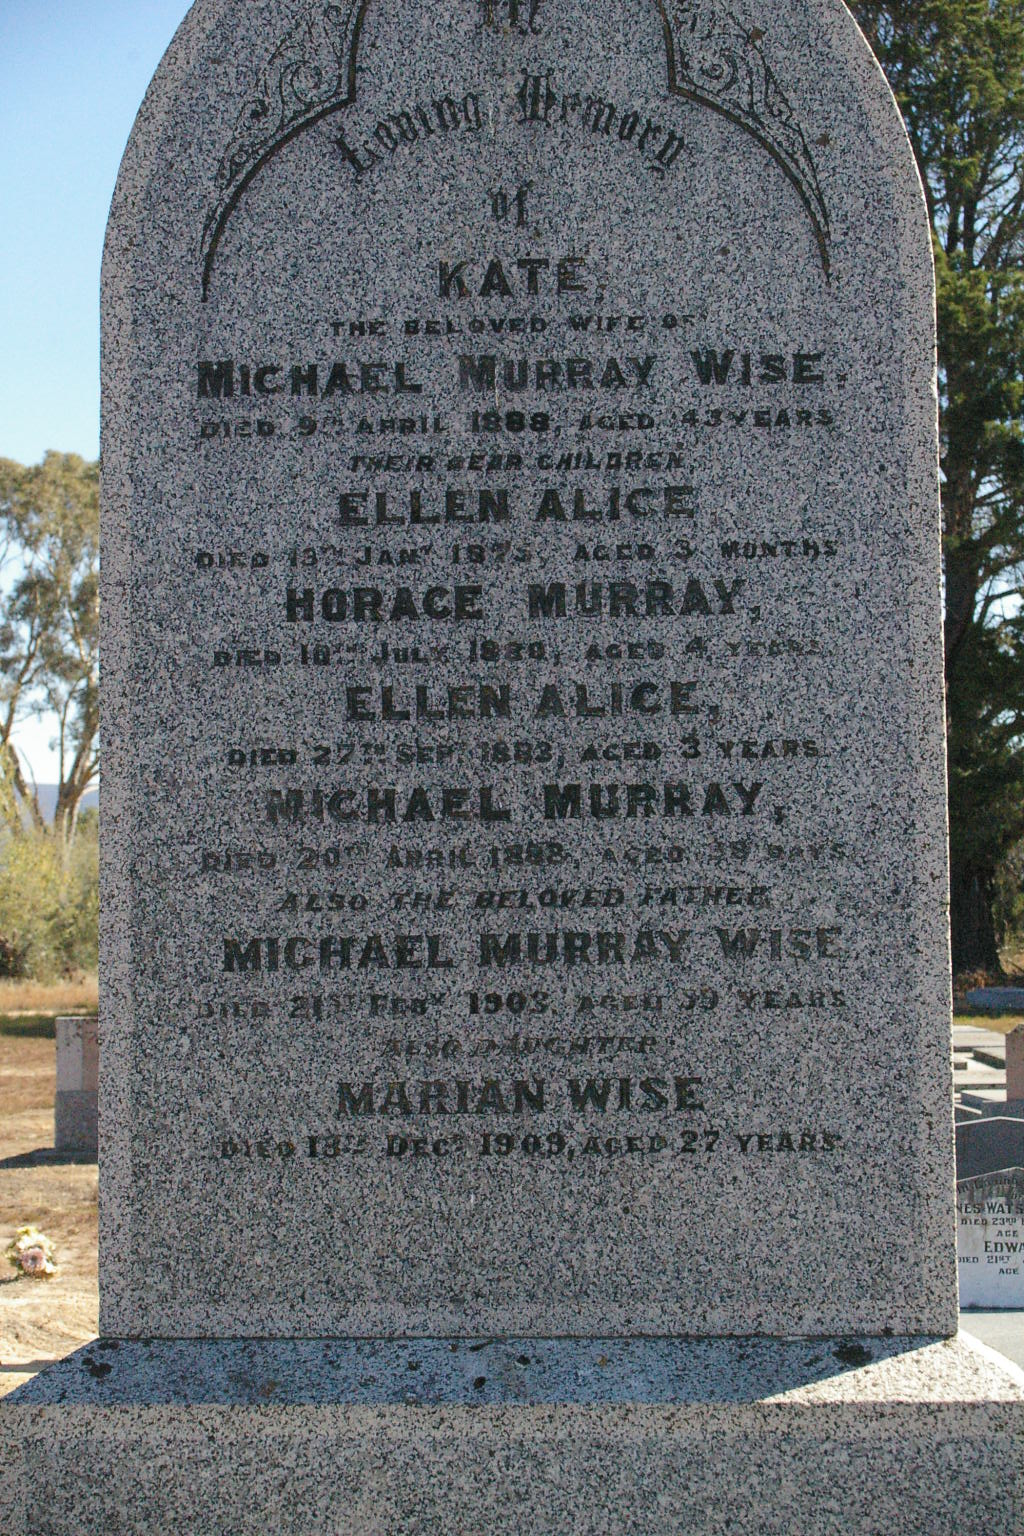 C:\Users\Virginia Rundle\Pictures\Family Tree\WISE Kate Ellen Alice Horace Murray Ellen Alice Michael Murray Michael Murray Marian.jpg